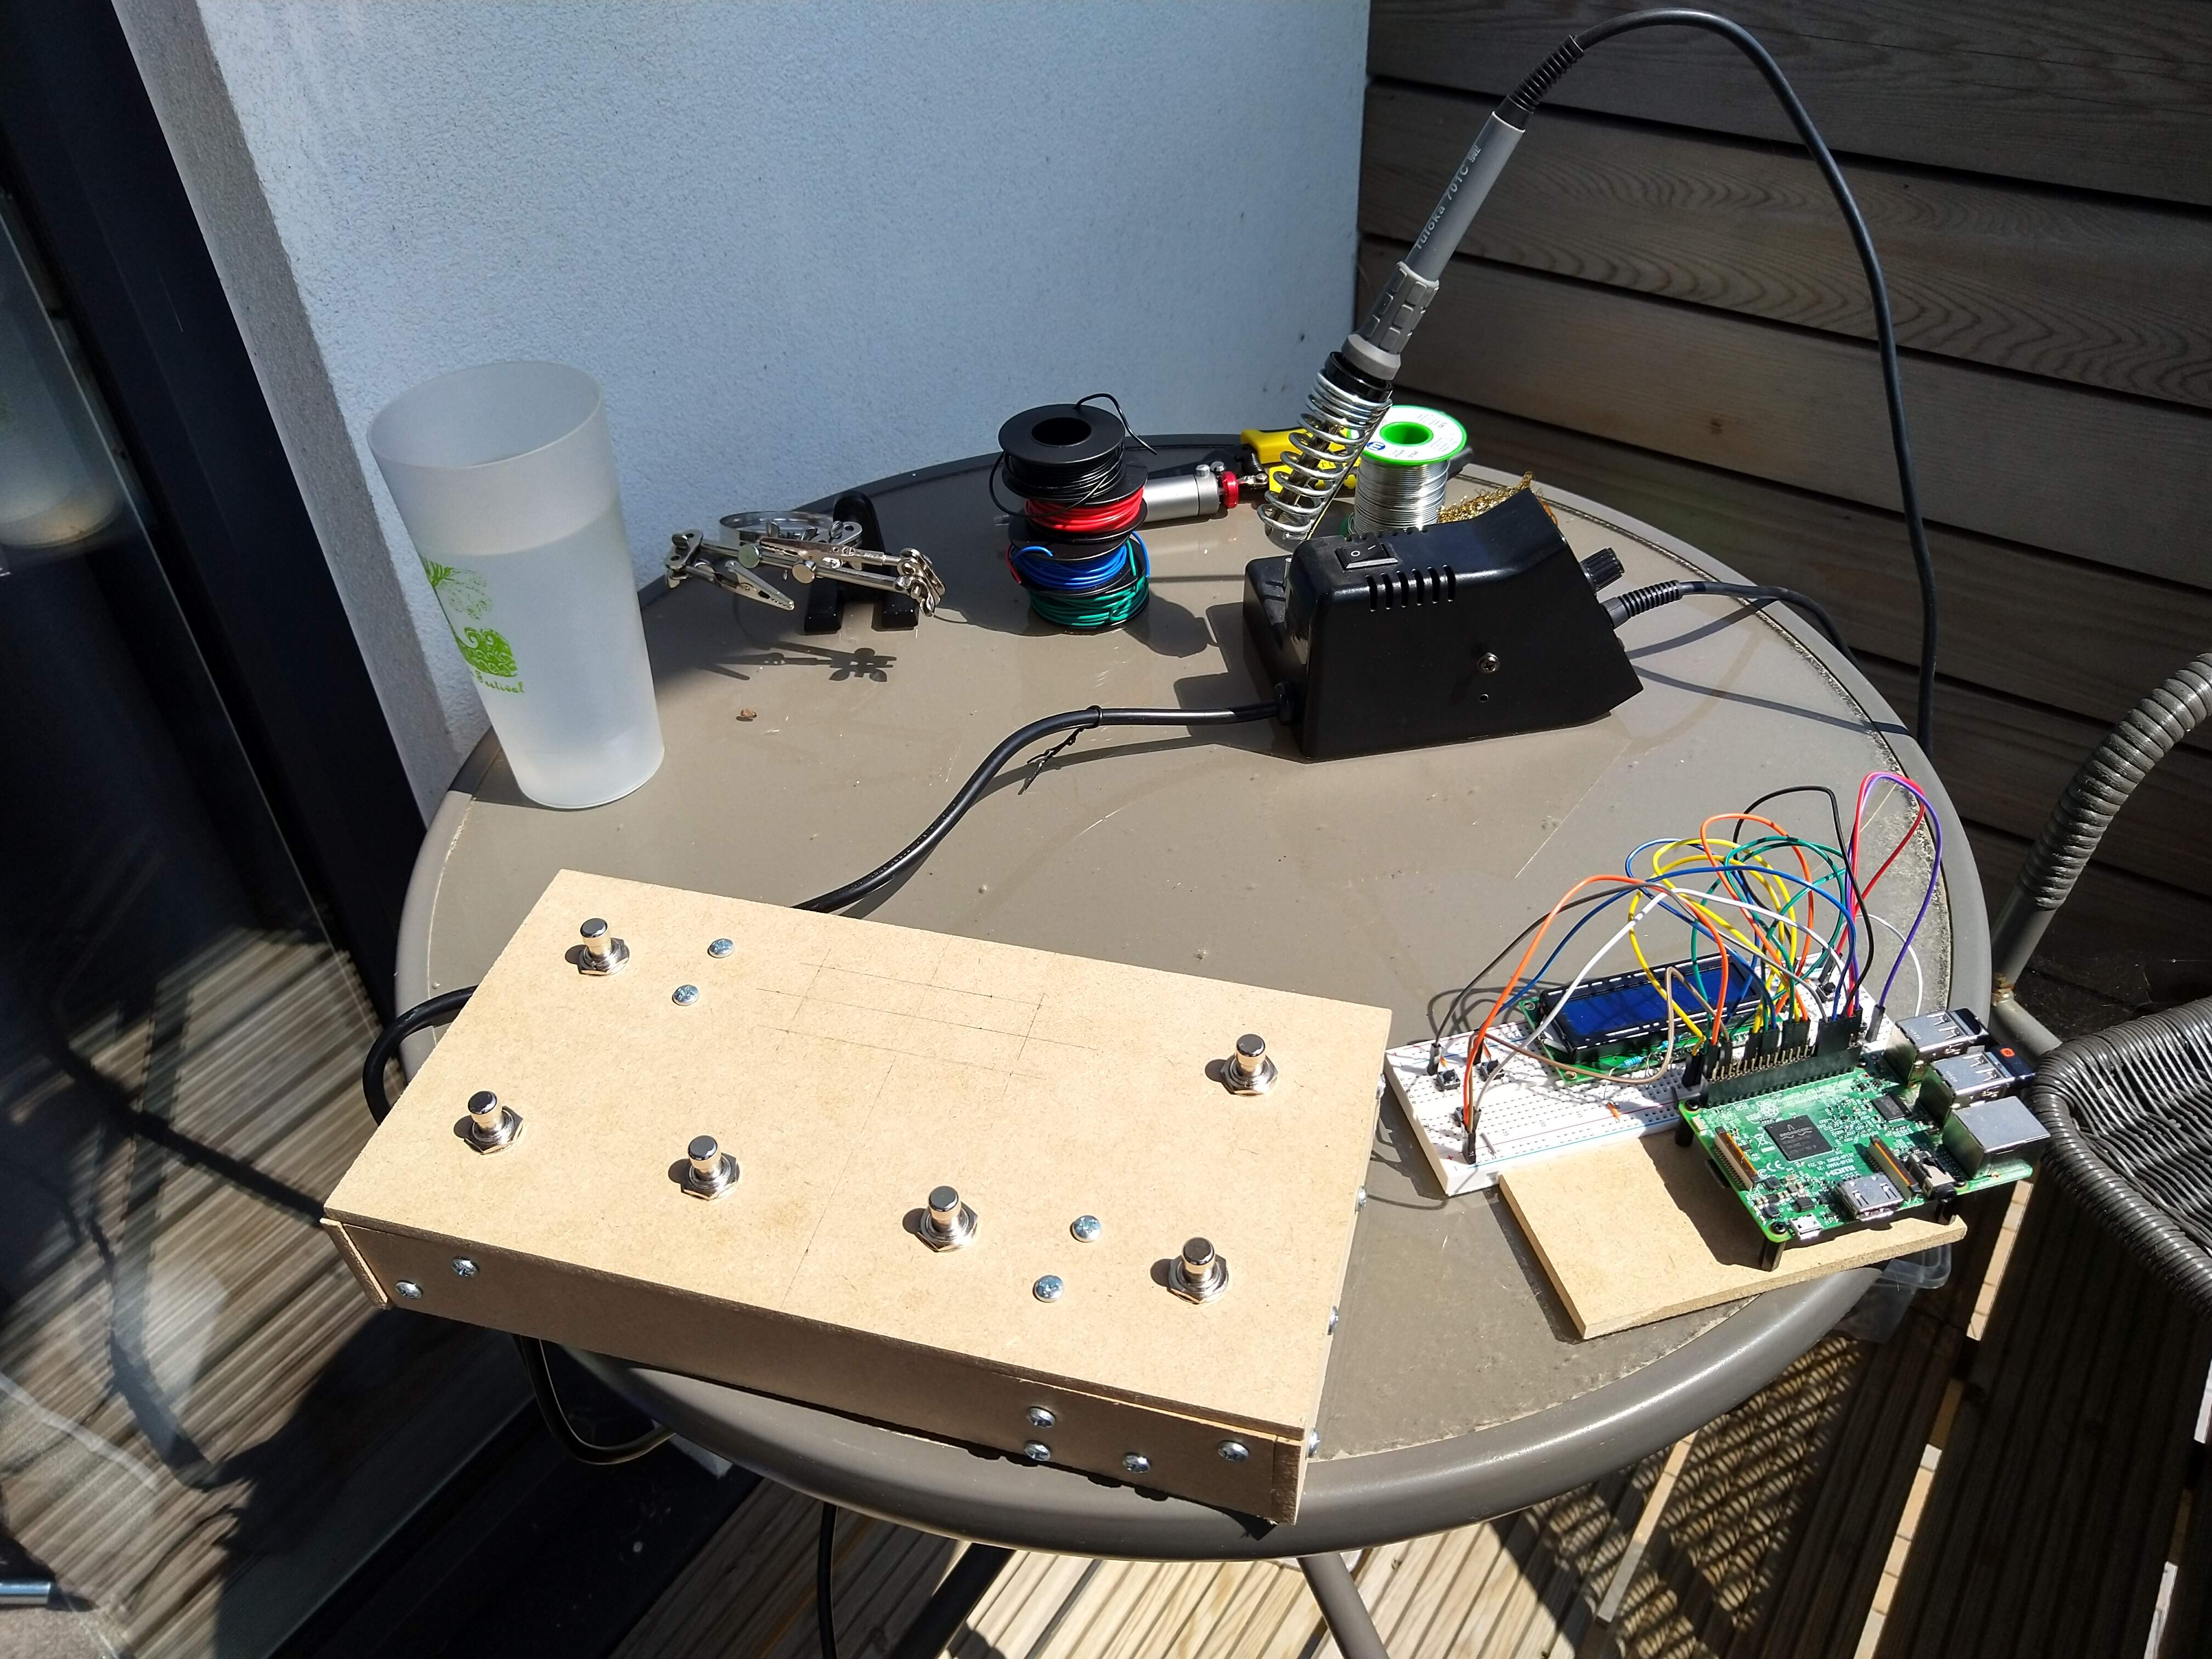 An outside table with the initial SoundFloored pedal box, the breadboard implementation and a soldering iron on it